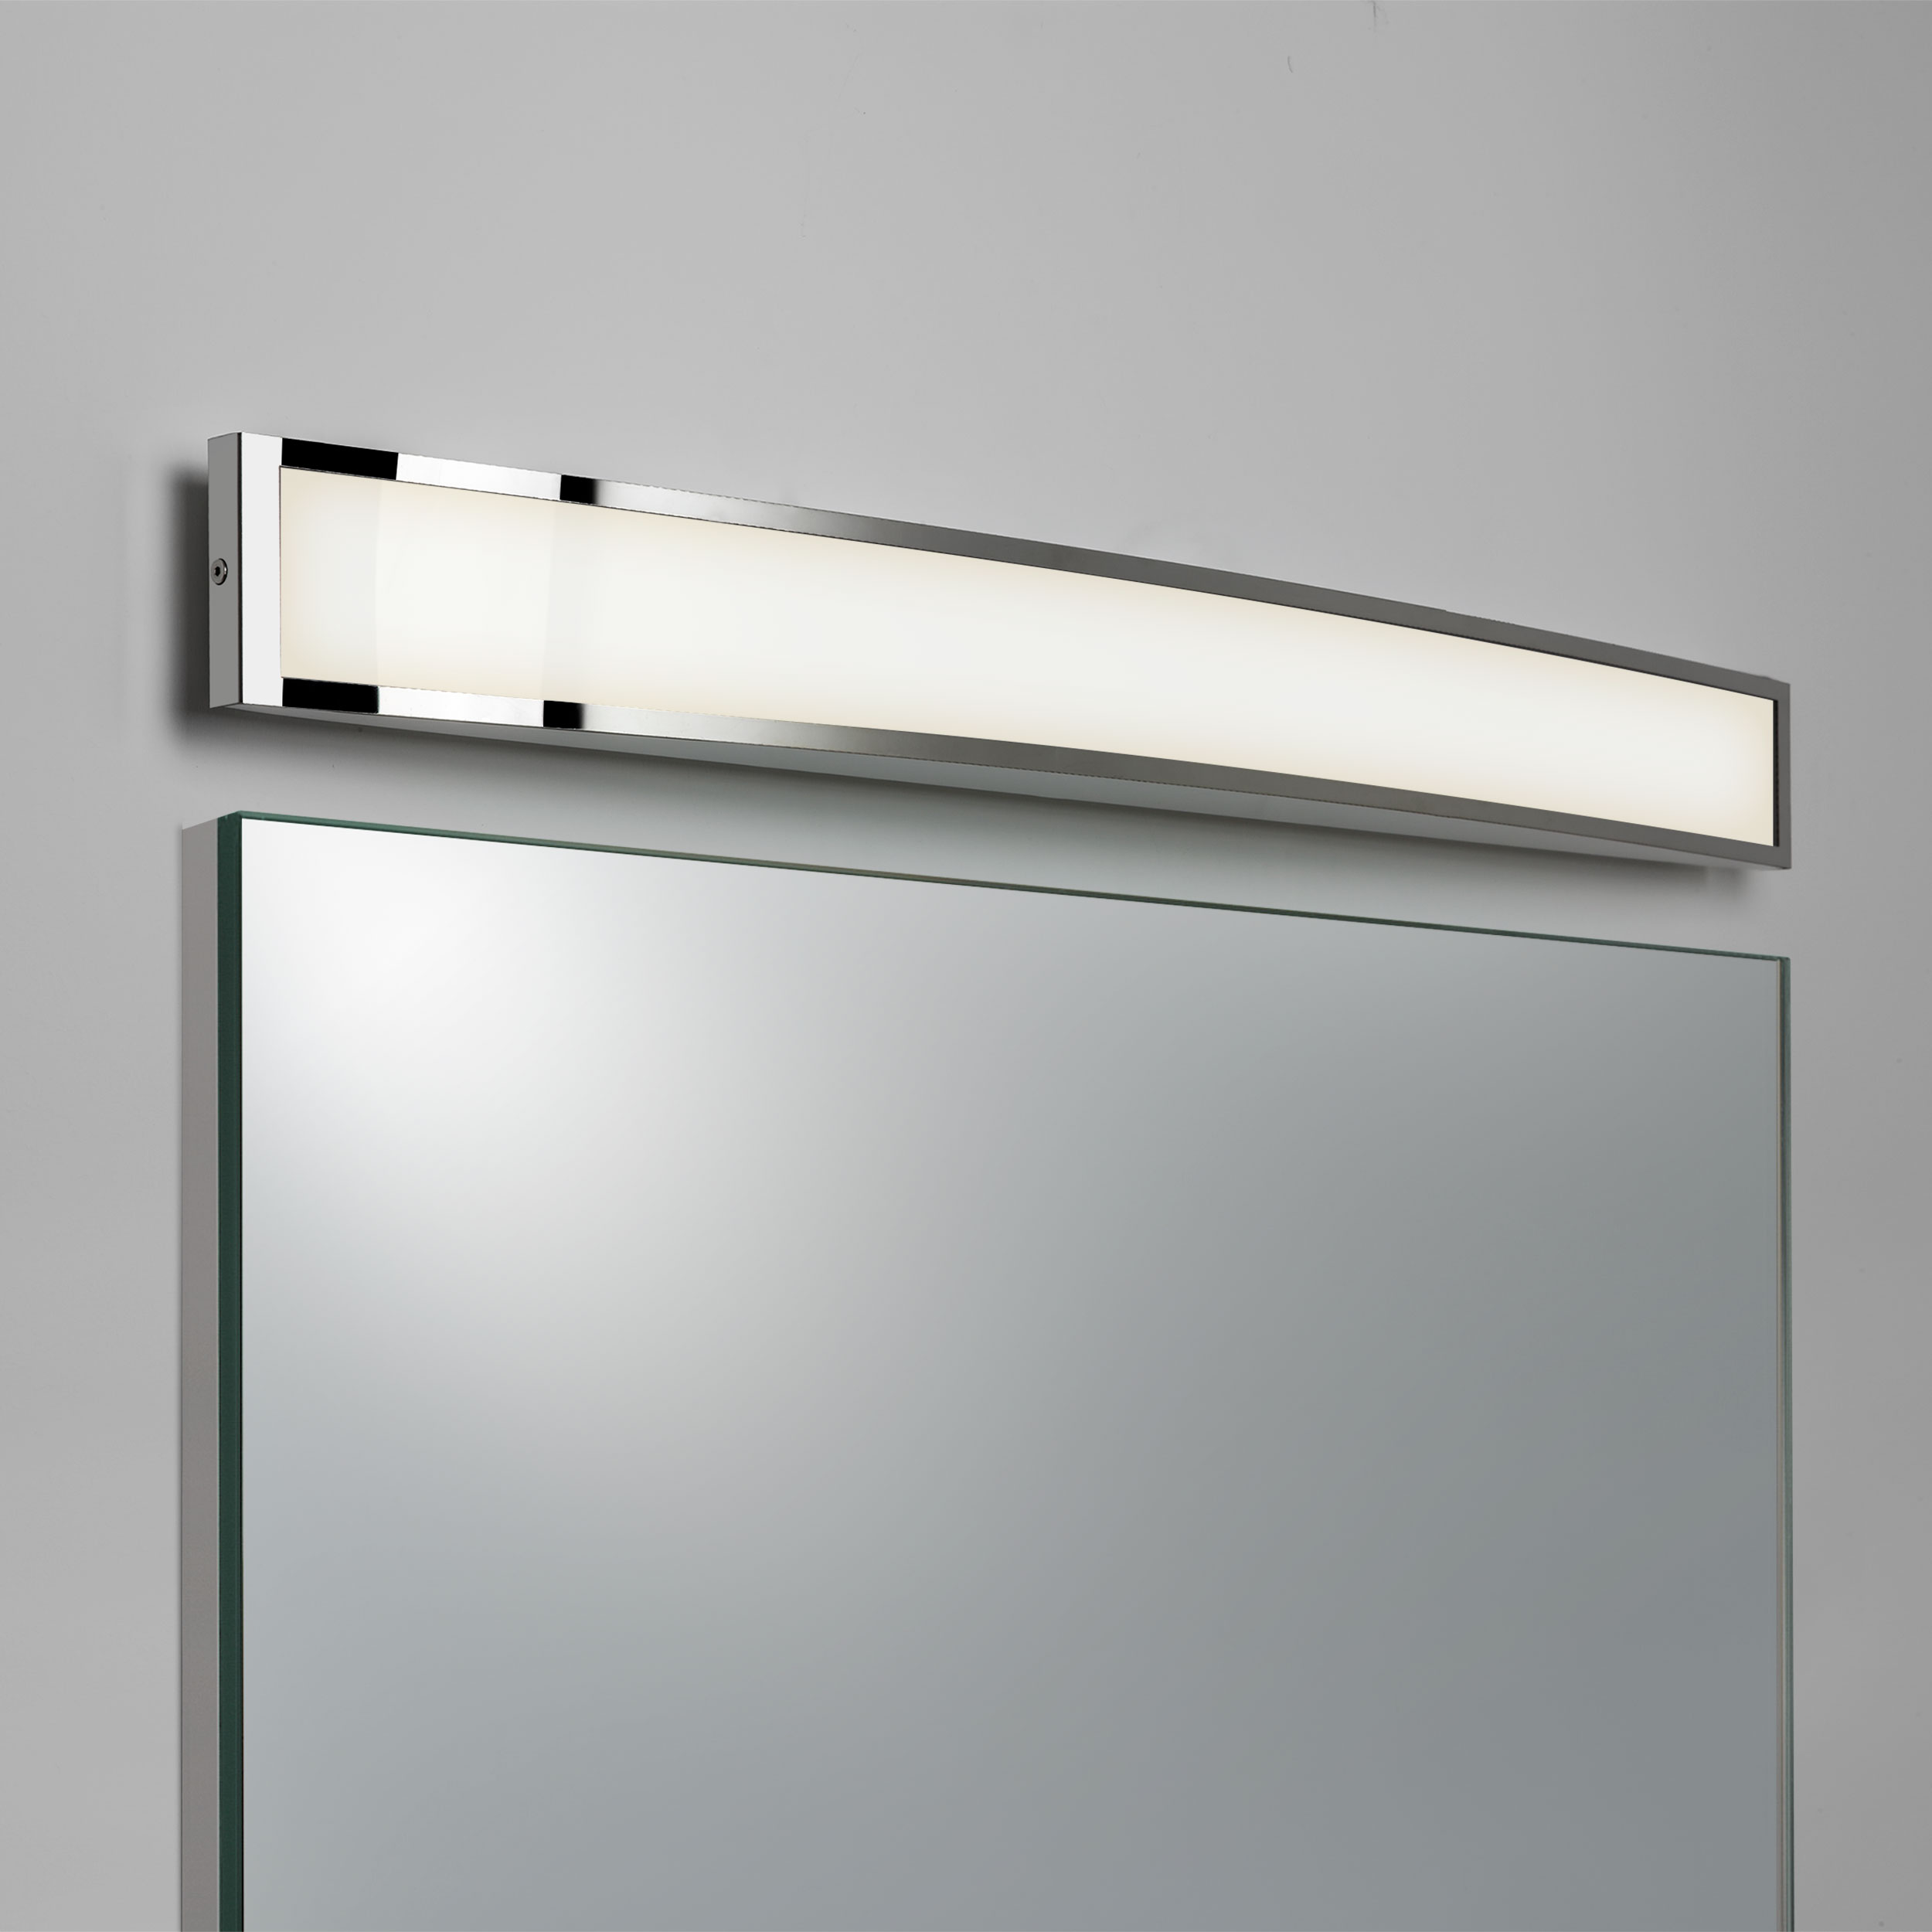 Astro Chord  bathroom warm white LED over mirror wall light 7.2W Polished chrome